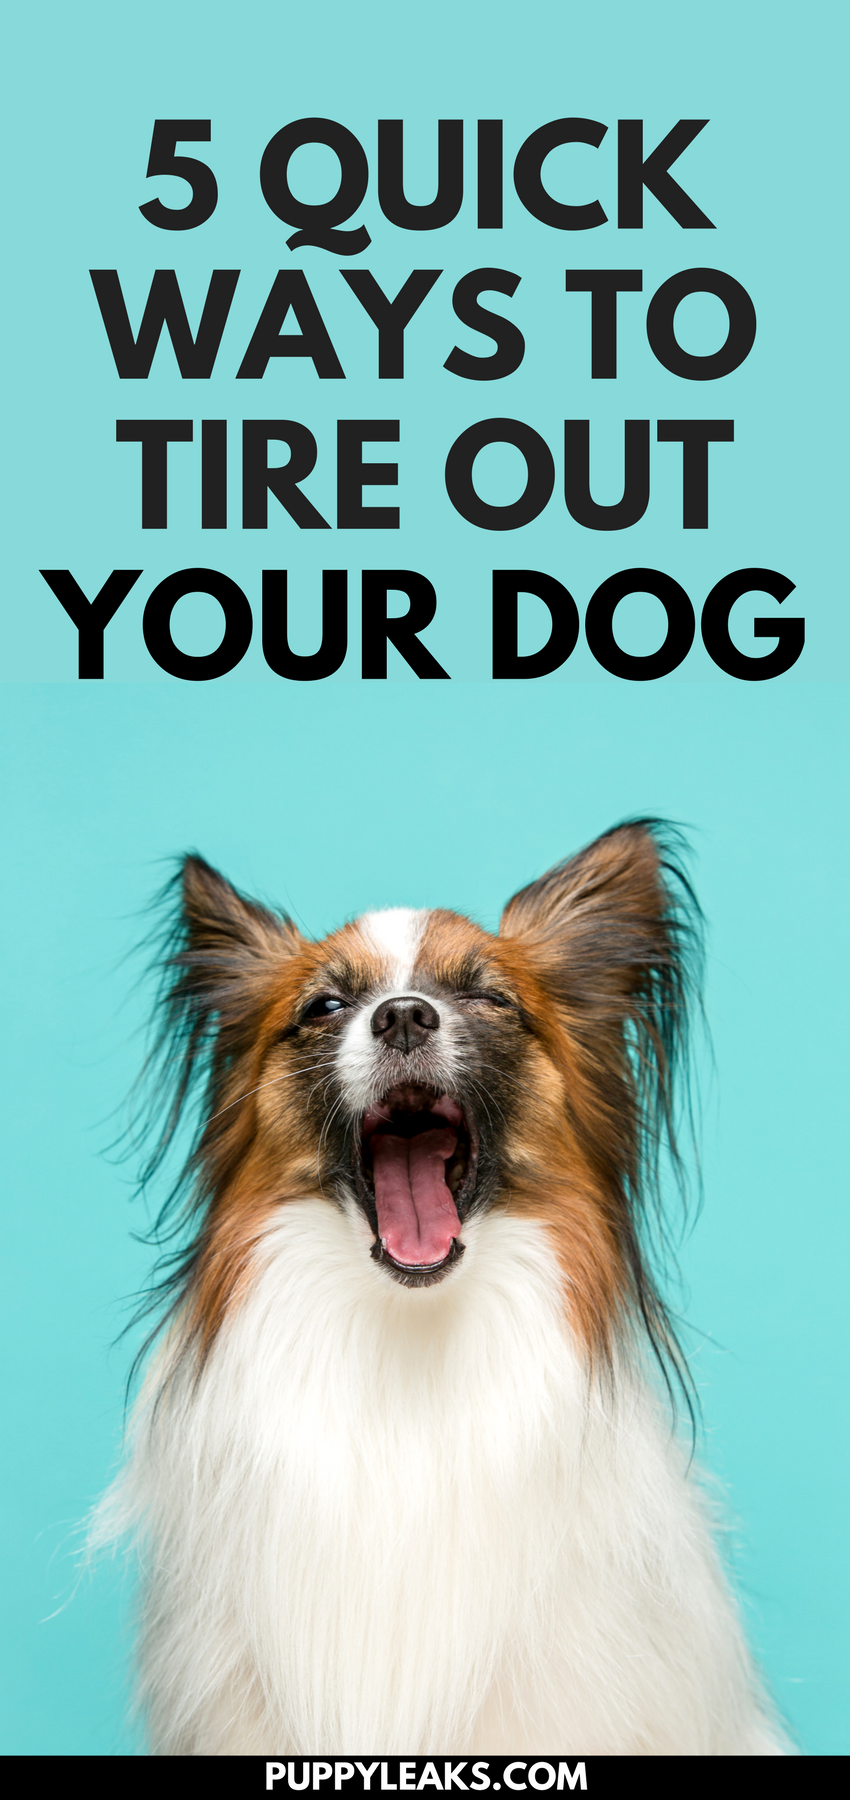 5 quick ways to tire out your dog puppy leaks does your dog have a lot of energy looking for some easy ways to exercise solutioingenieria Images